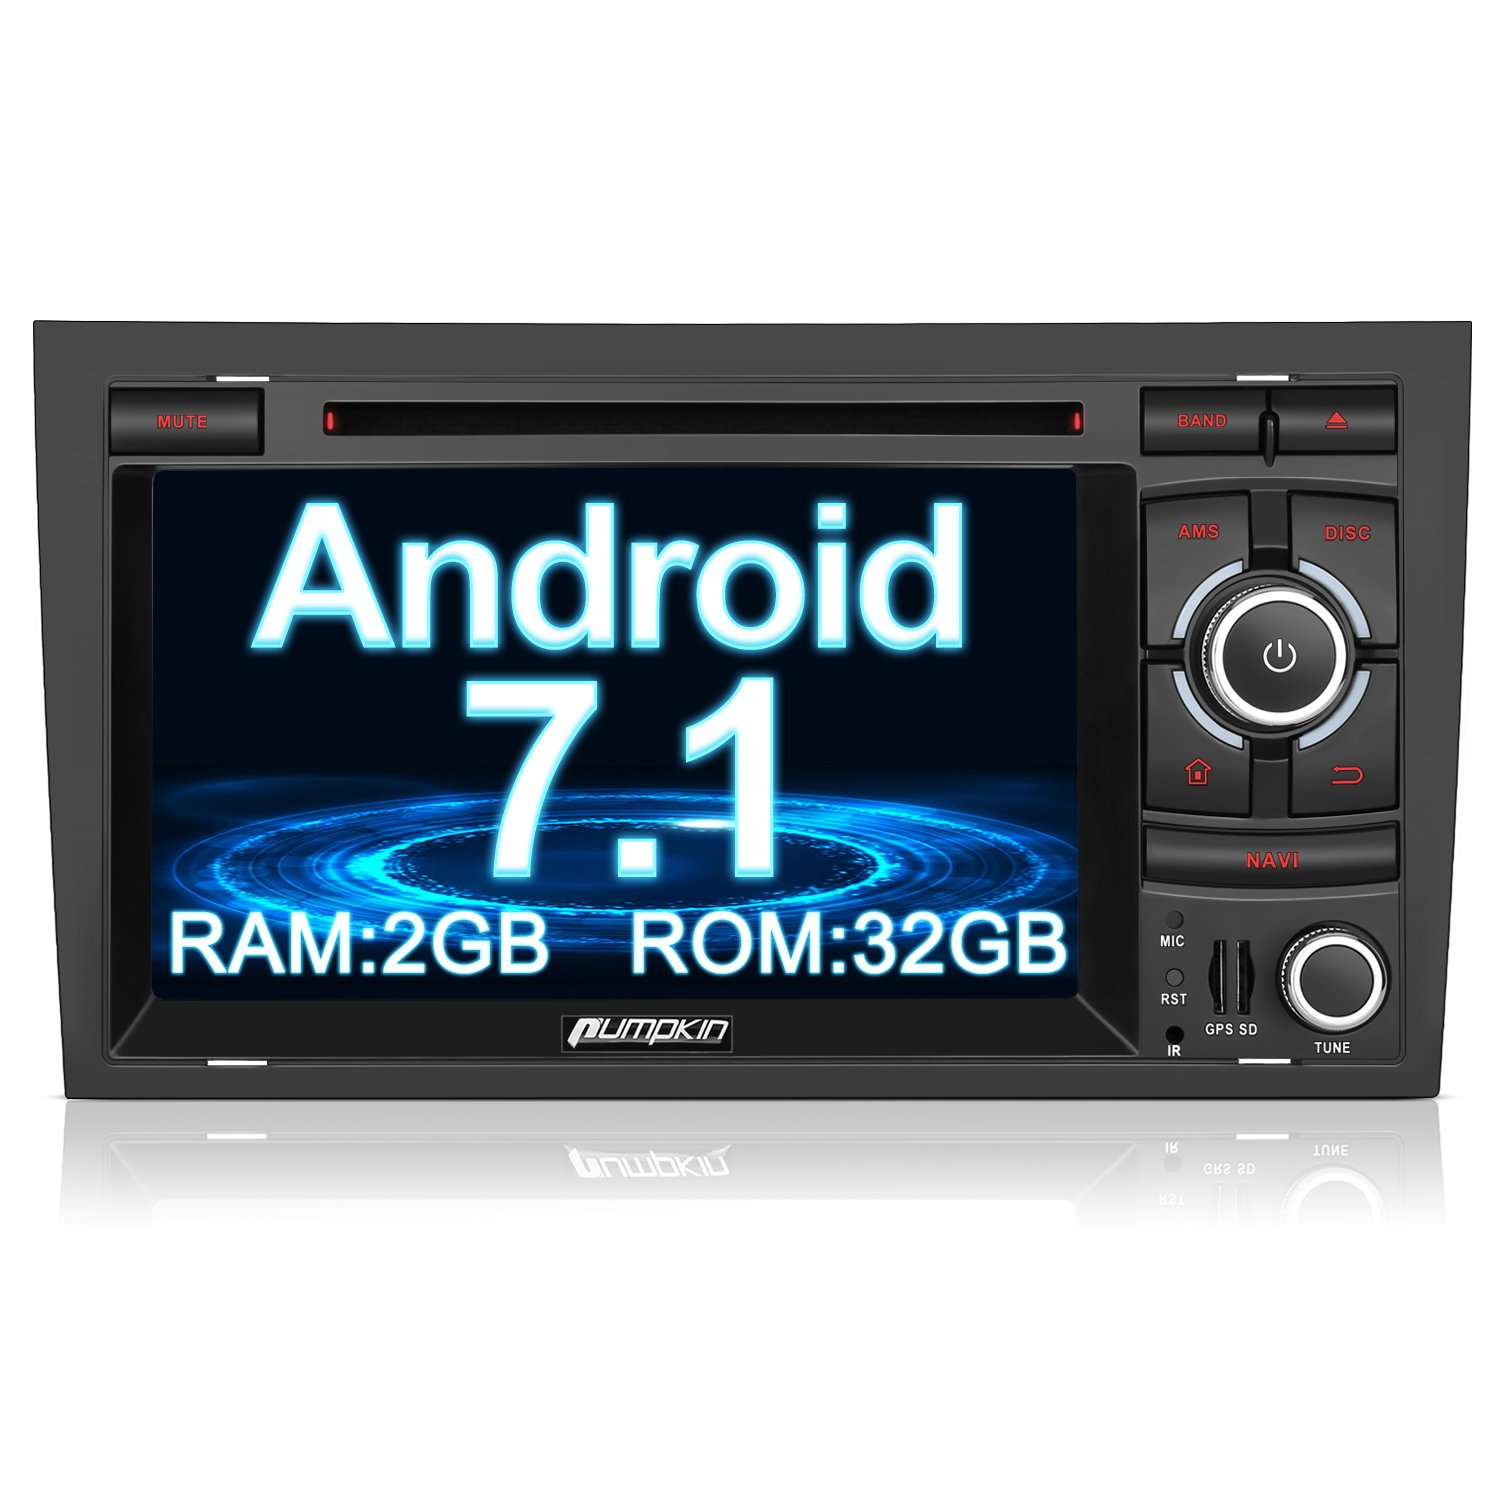 Pumpkin Android 71 2gb 32gb Car Stereo For Audi A4 Ford Transit Forum O View Topic Jvc Head Unit With Steering Electronics